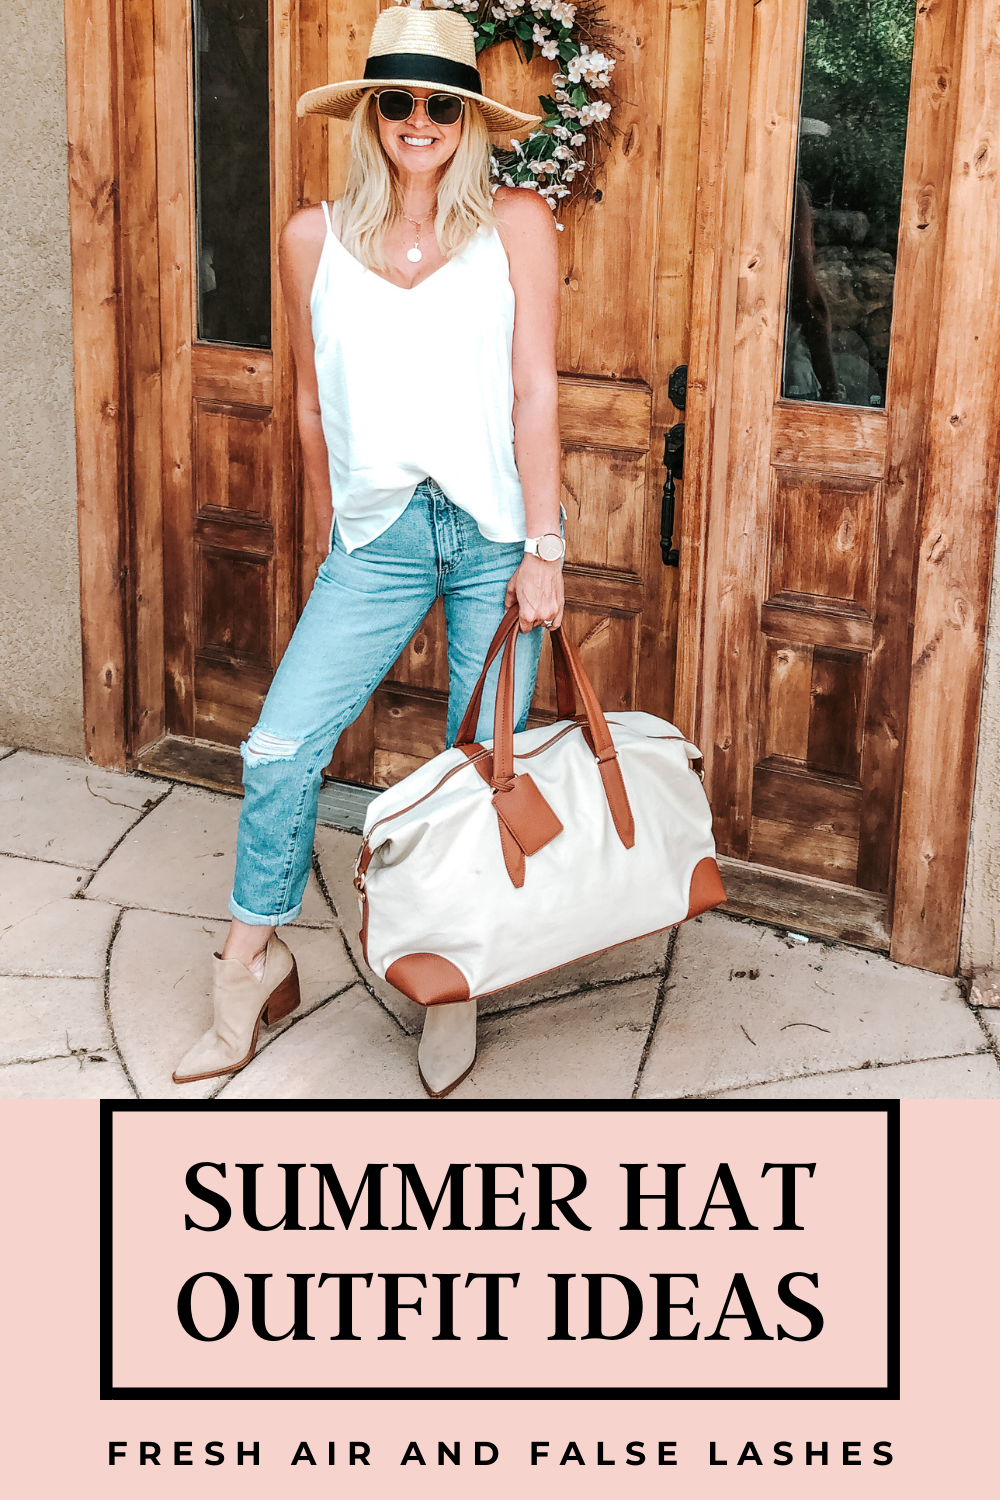 Summer hat outfit ideas